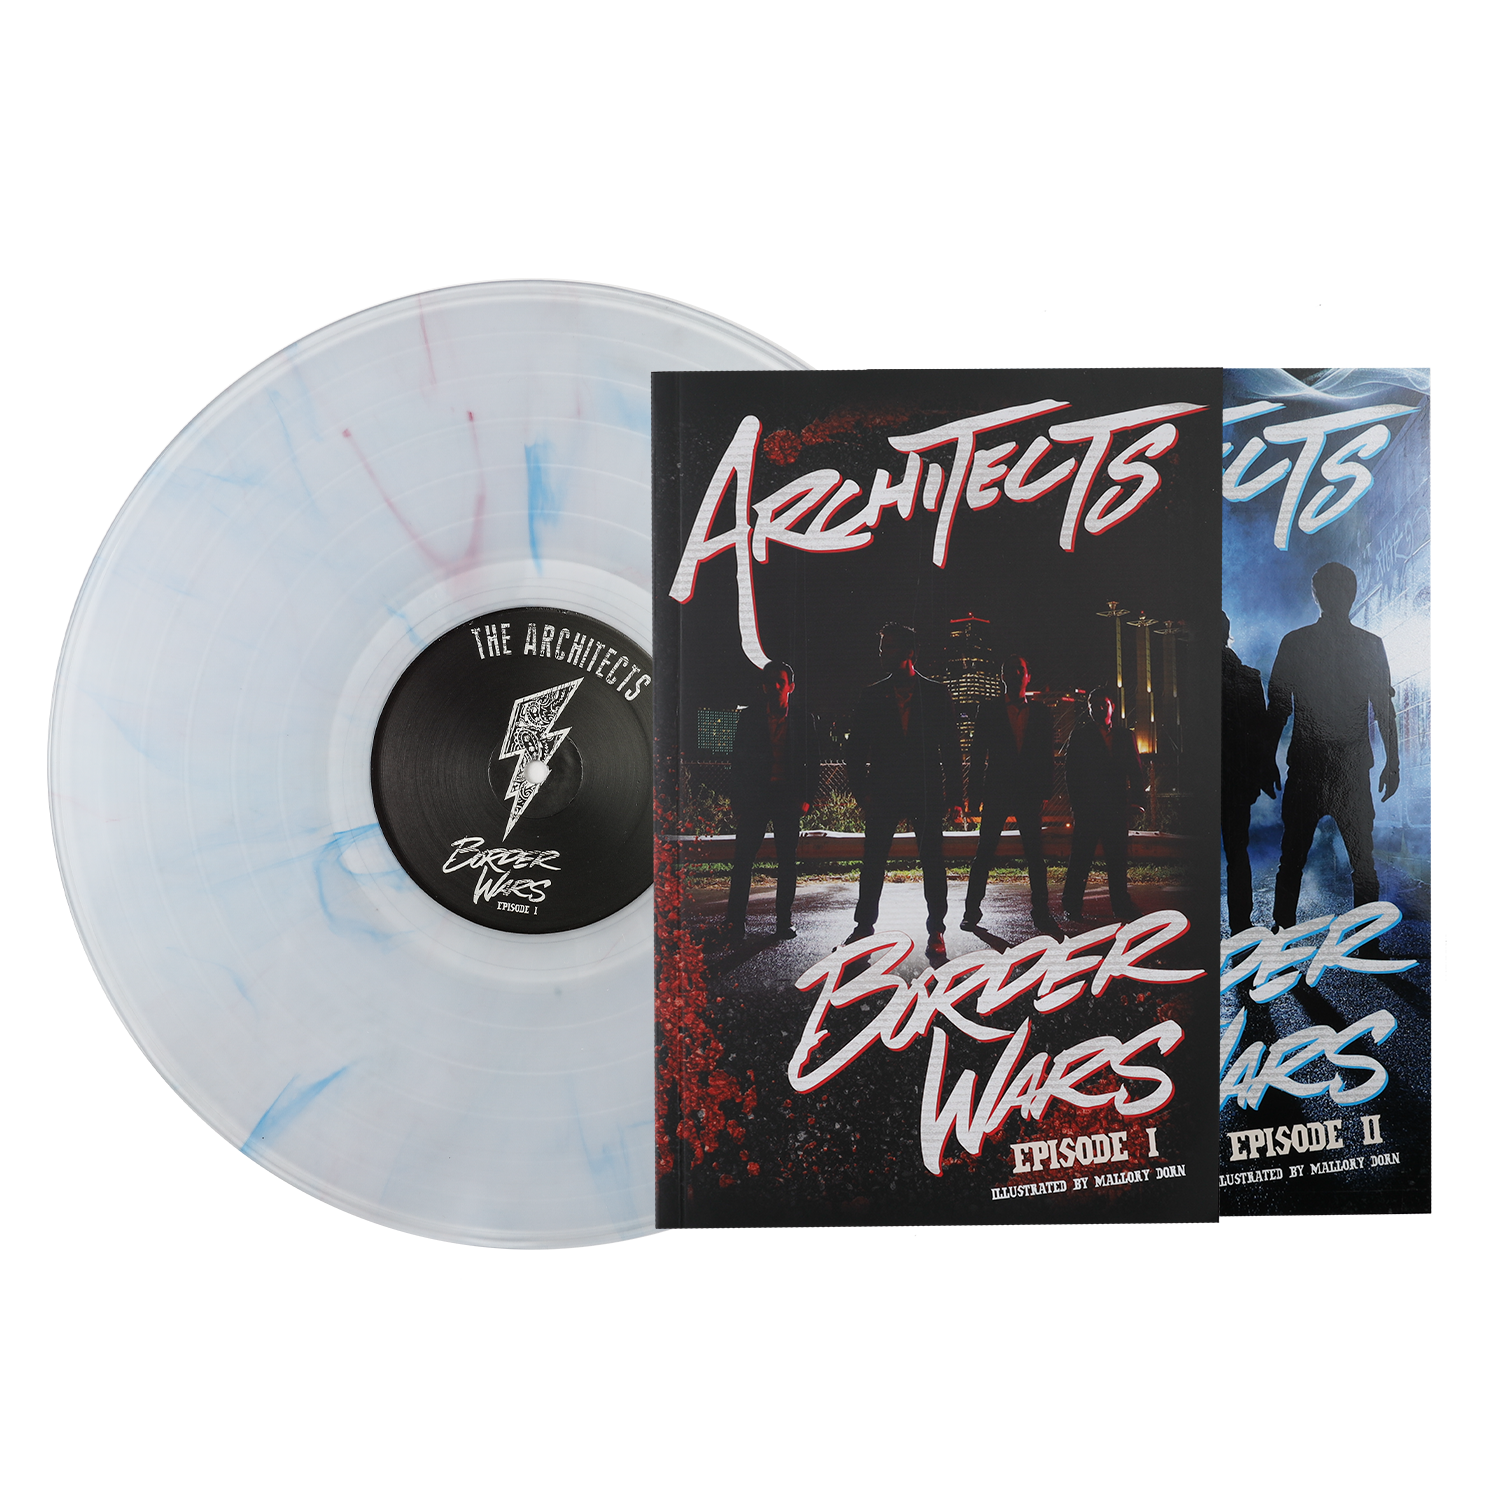 Architects | Border Wars Comic Book / LP Bundle